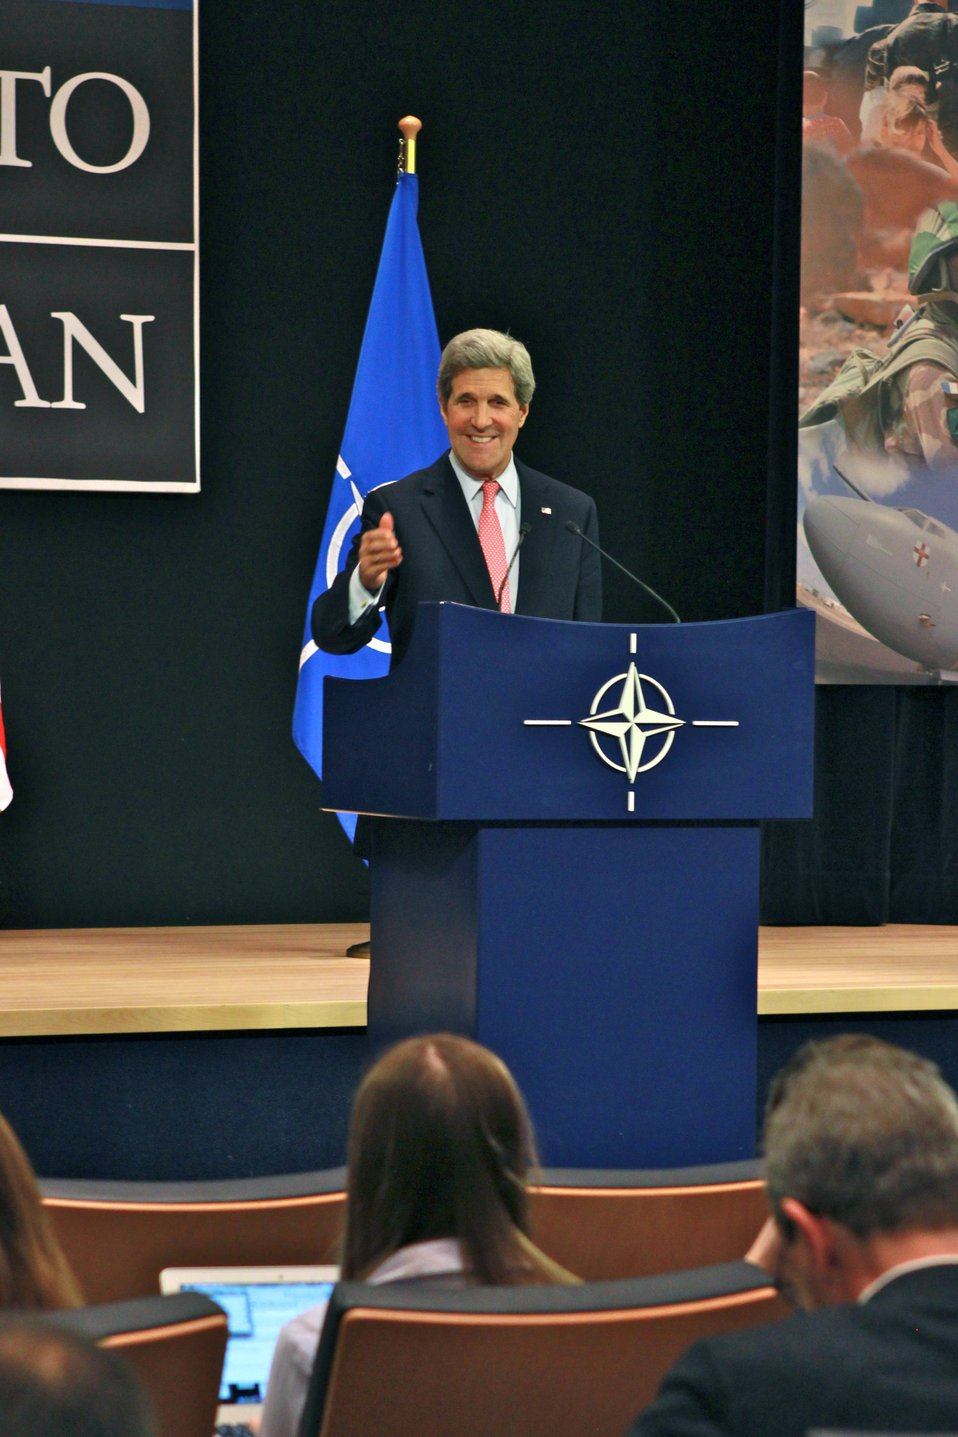 Secretary Kerry Holds a Press Conference at NATO Foreign Ministerial